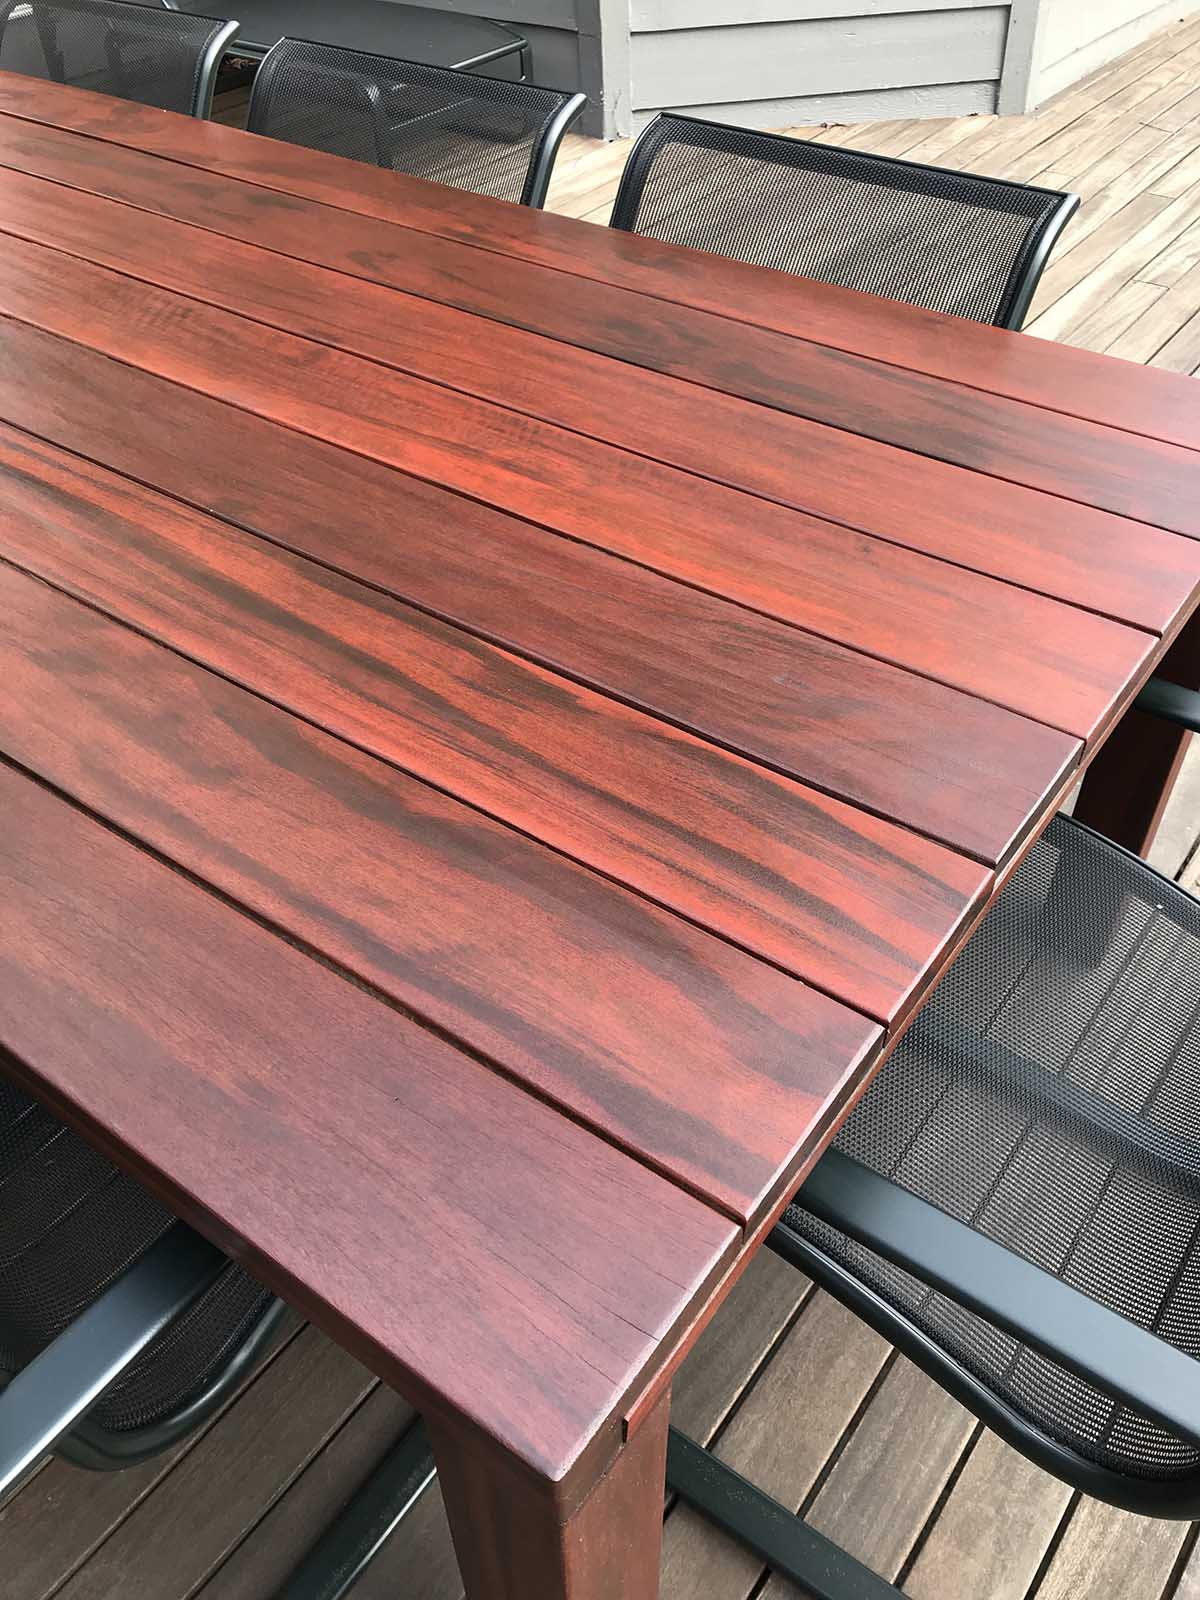 ExoShield Treated TigerWood Table shown after Maintenance Coat in April 2018